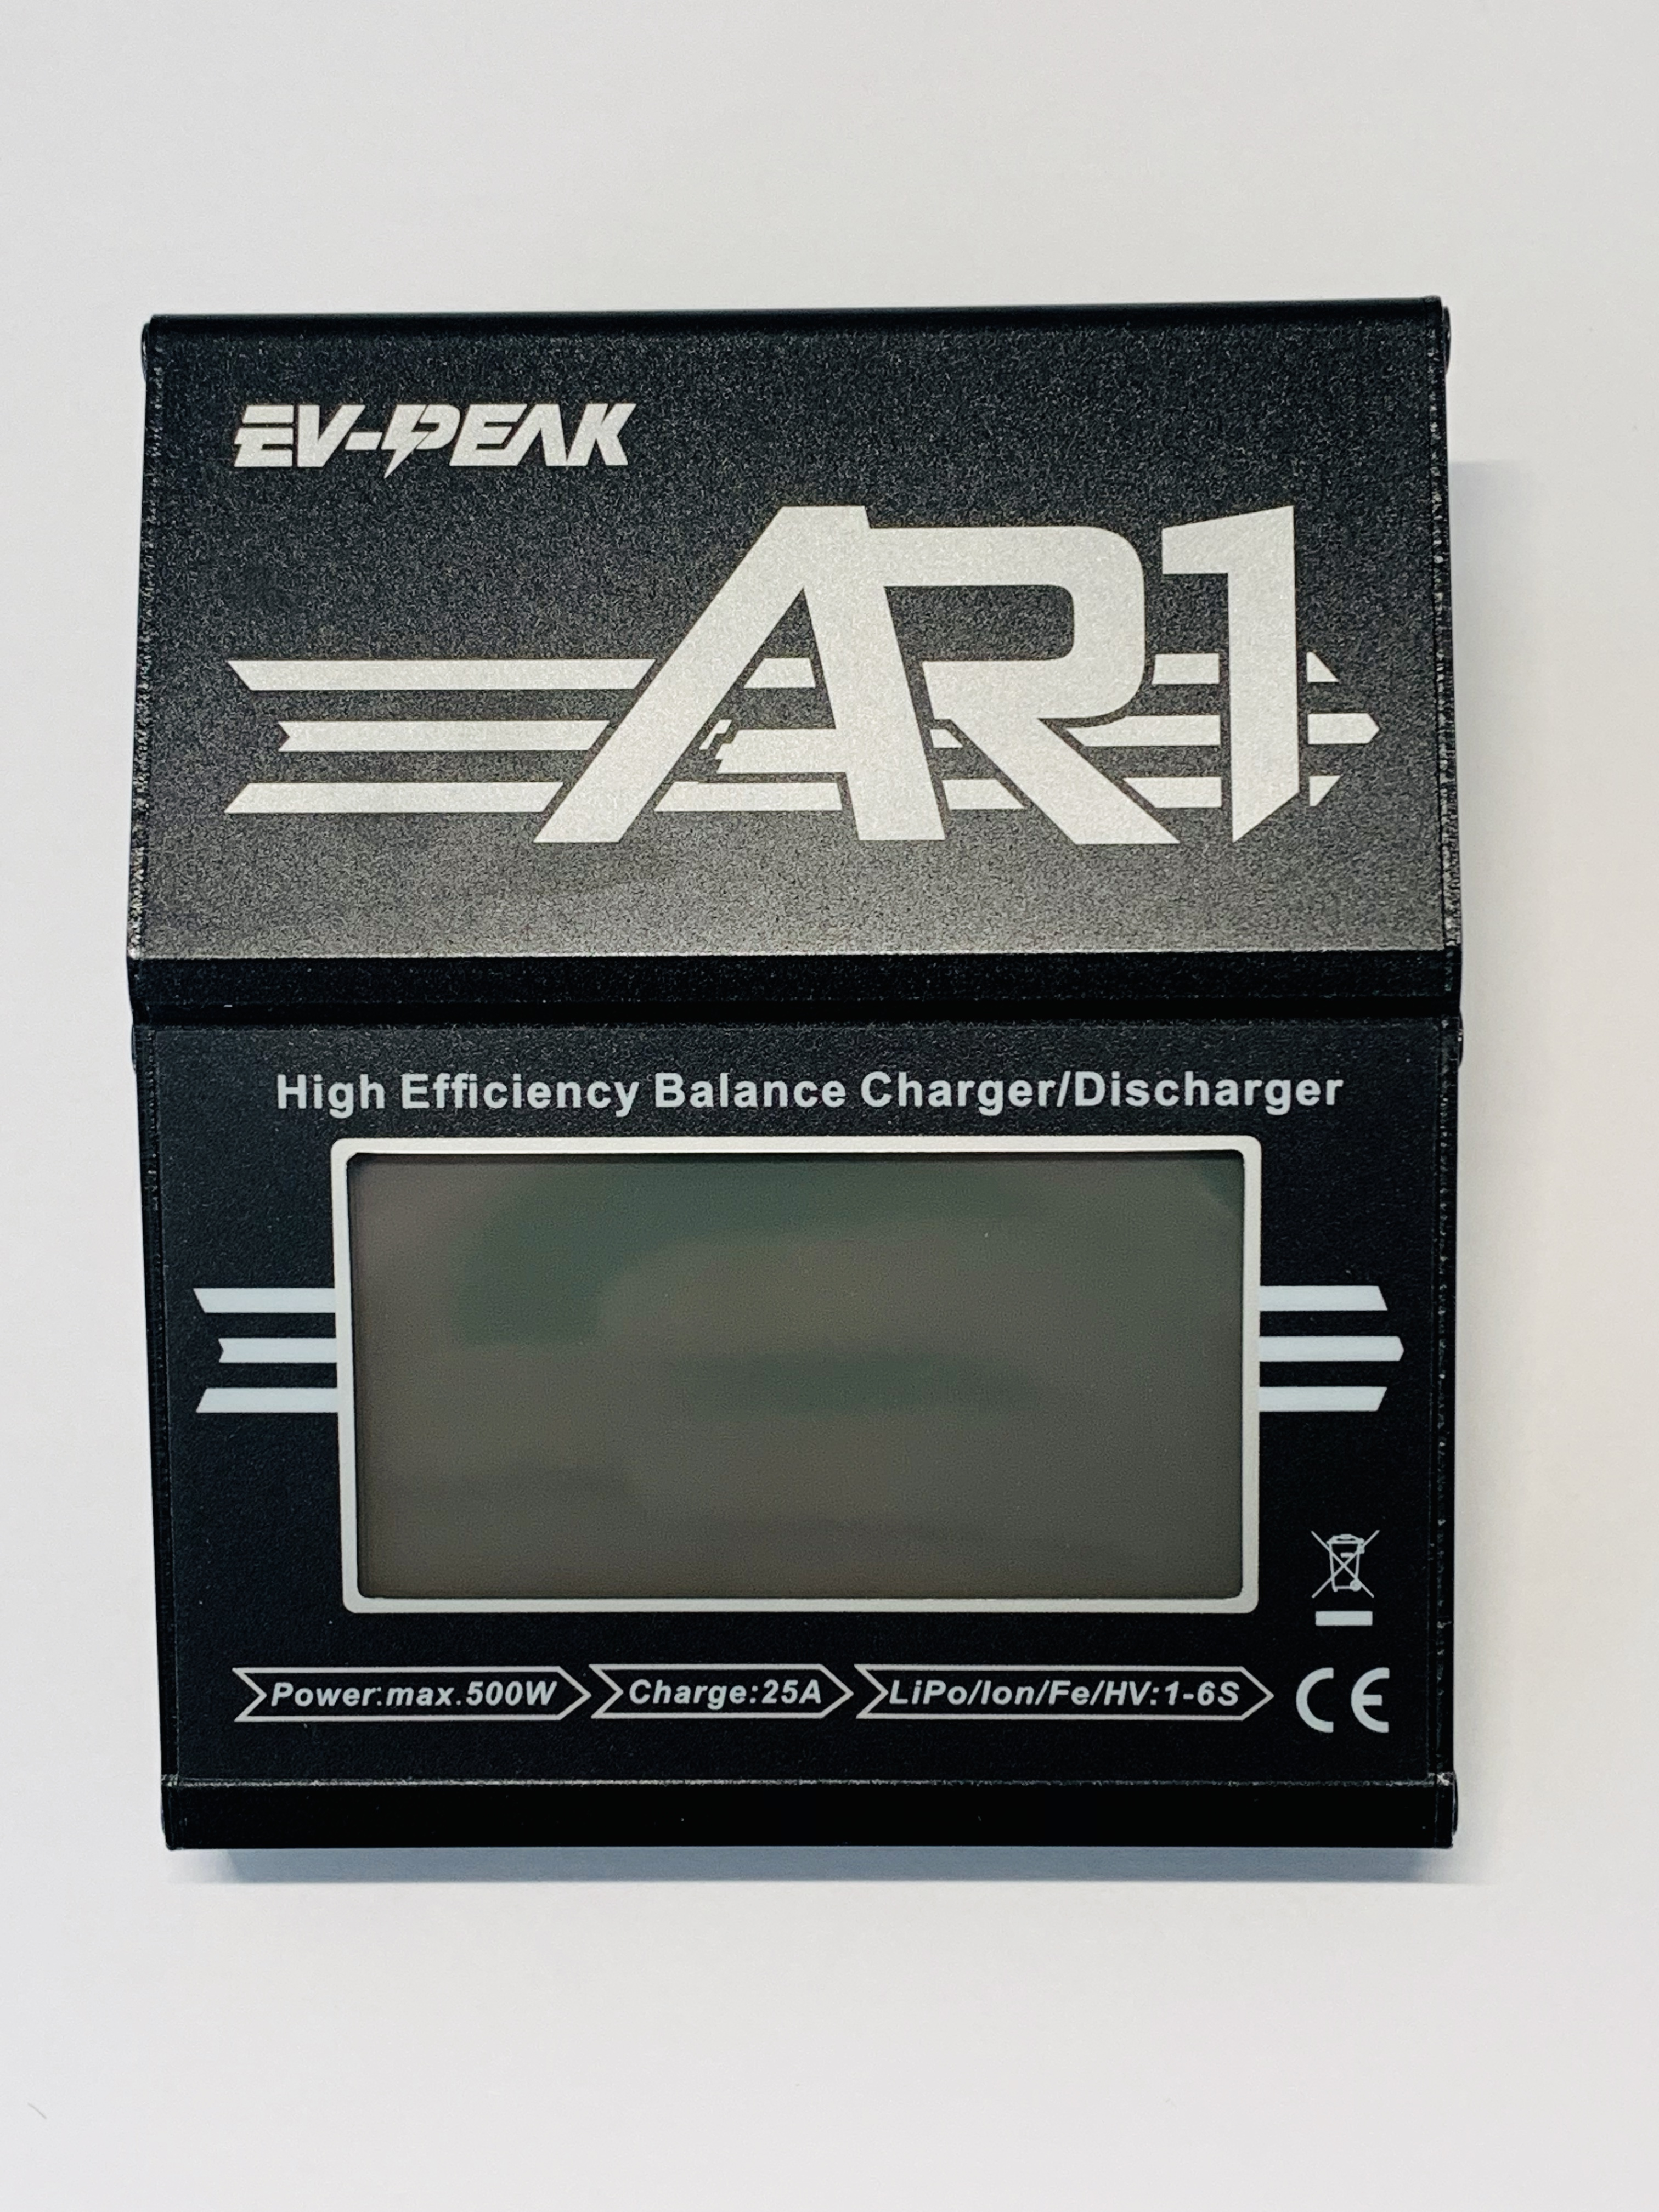 EV-Peak AR1 Black Edition Multi Function Touch Screen Charger